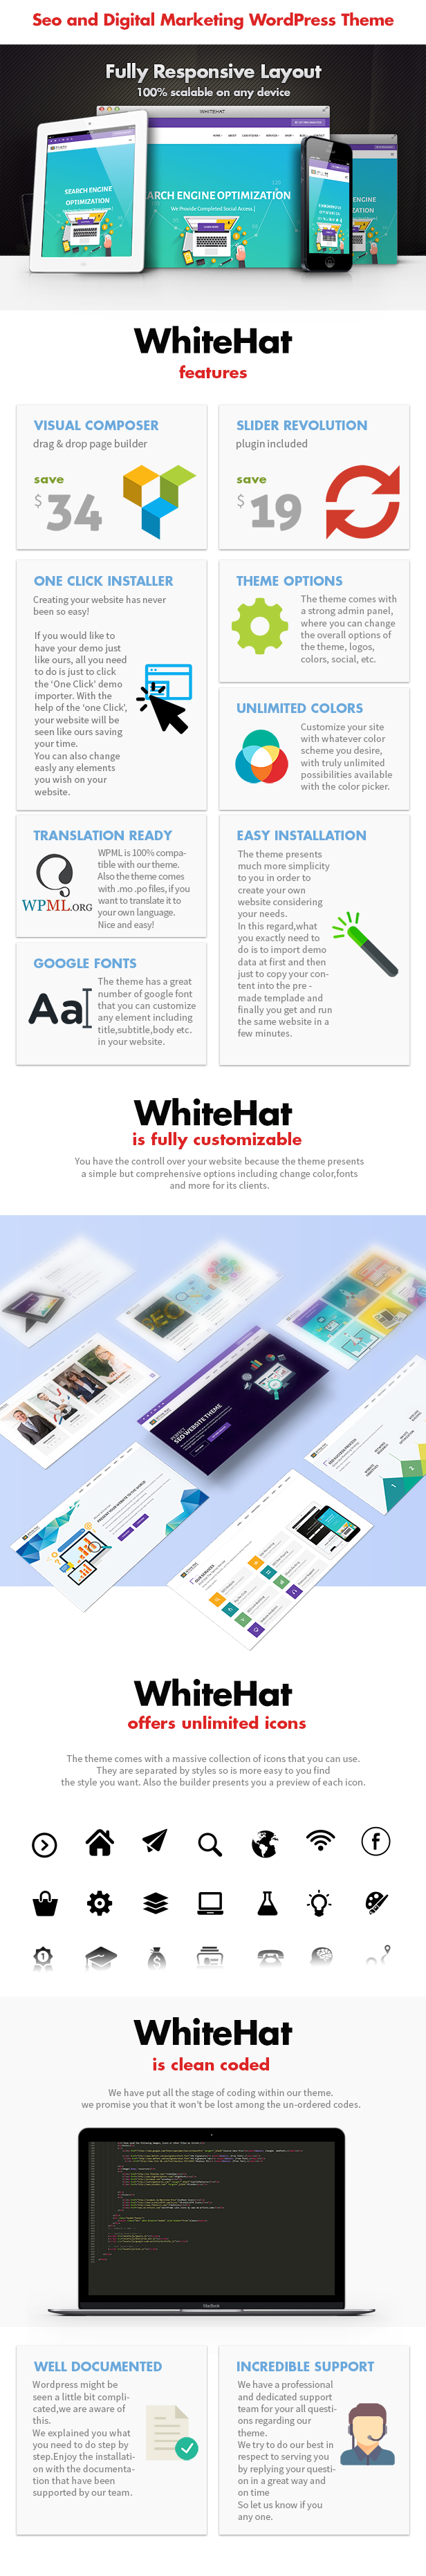 WhiteHat - Digital Marketing Theme - 3